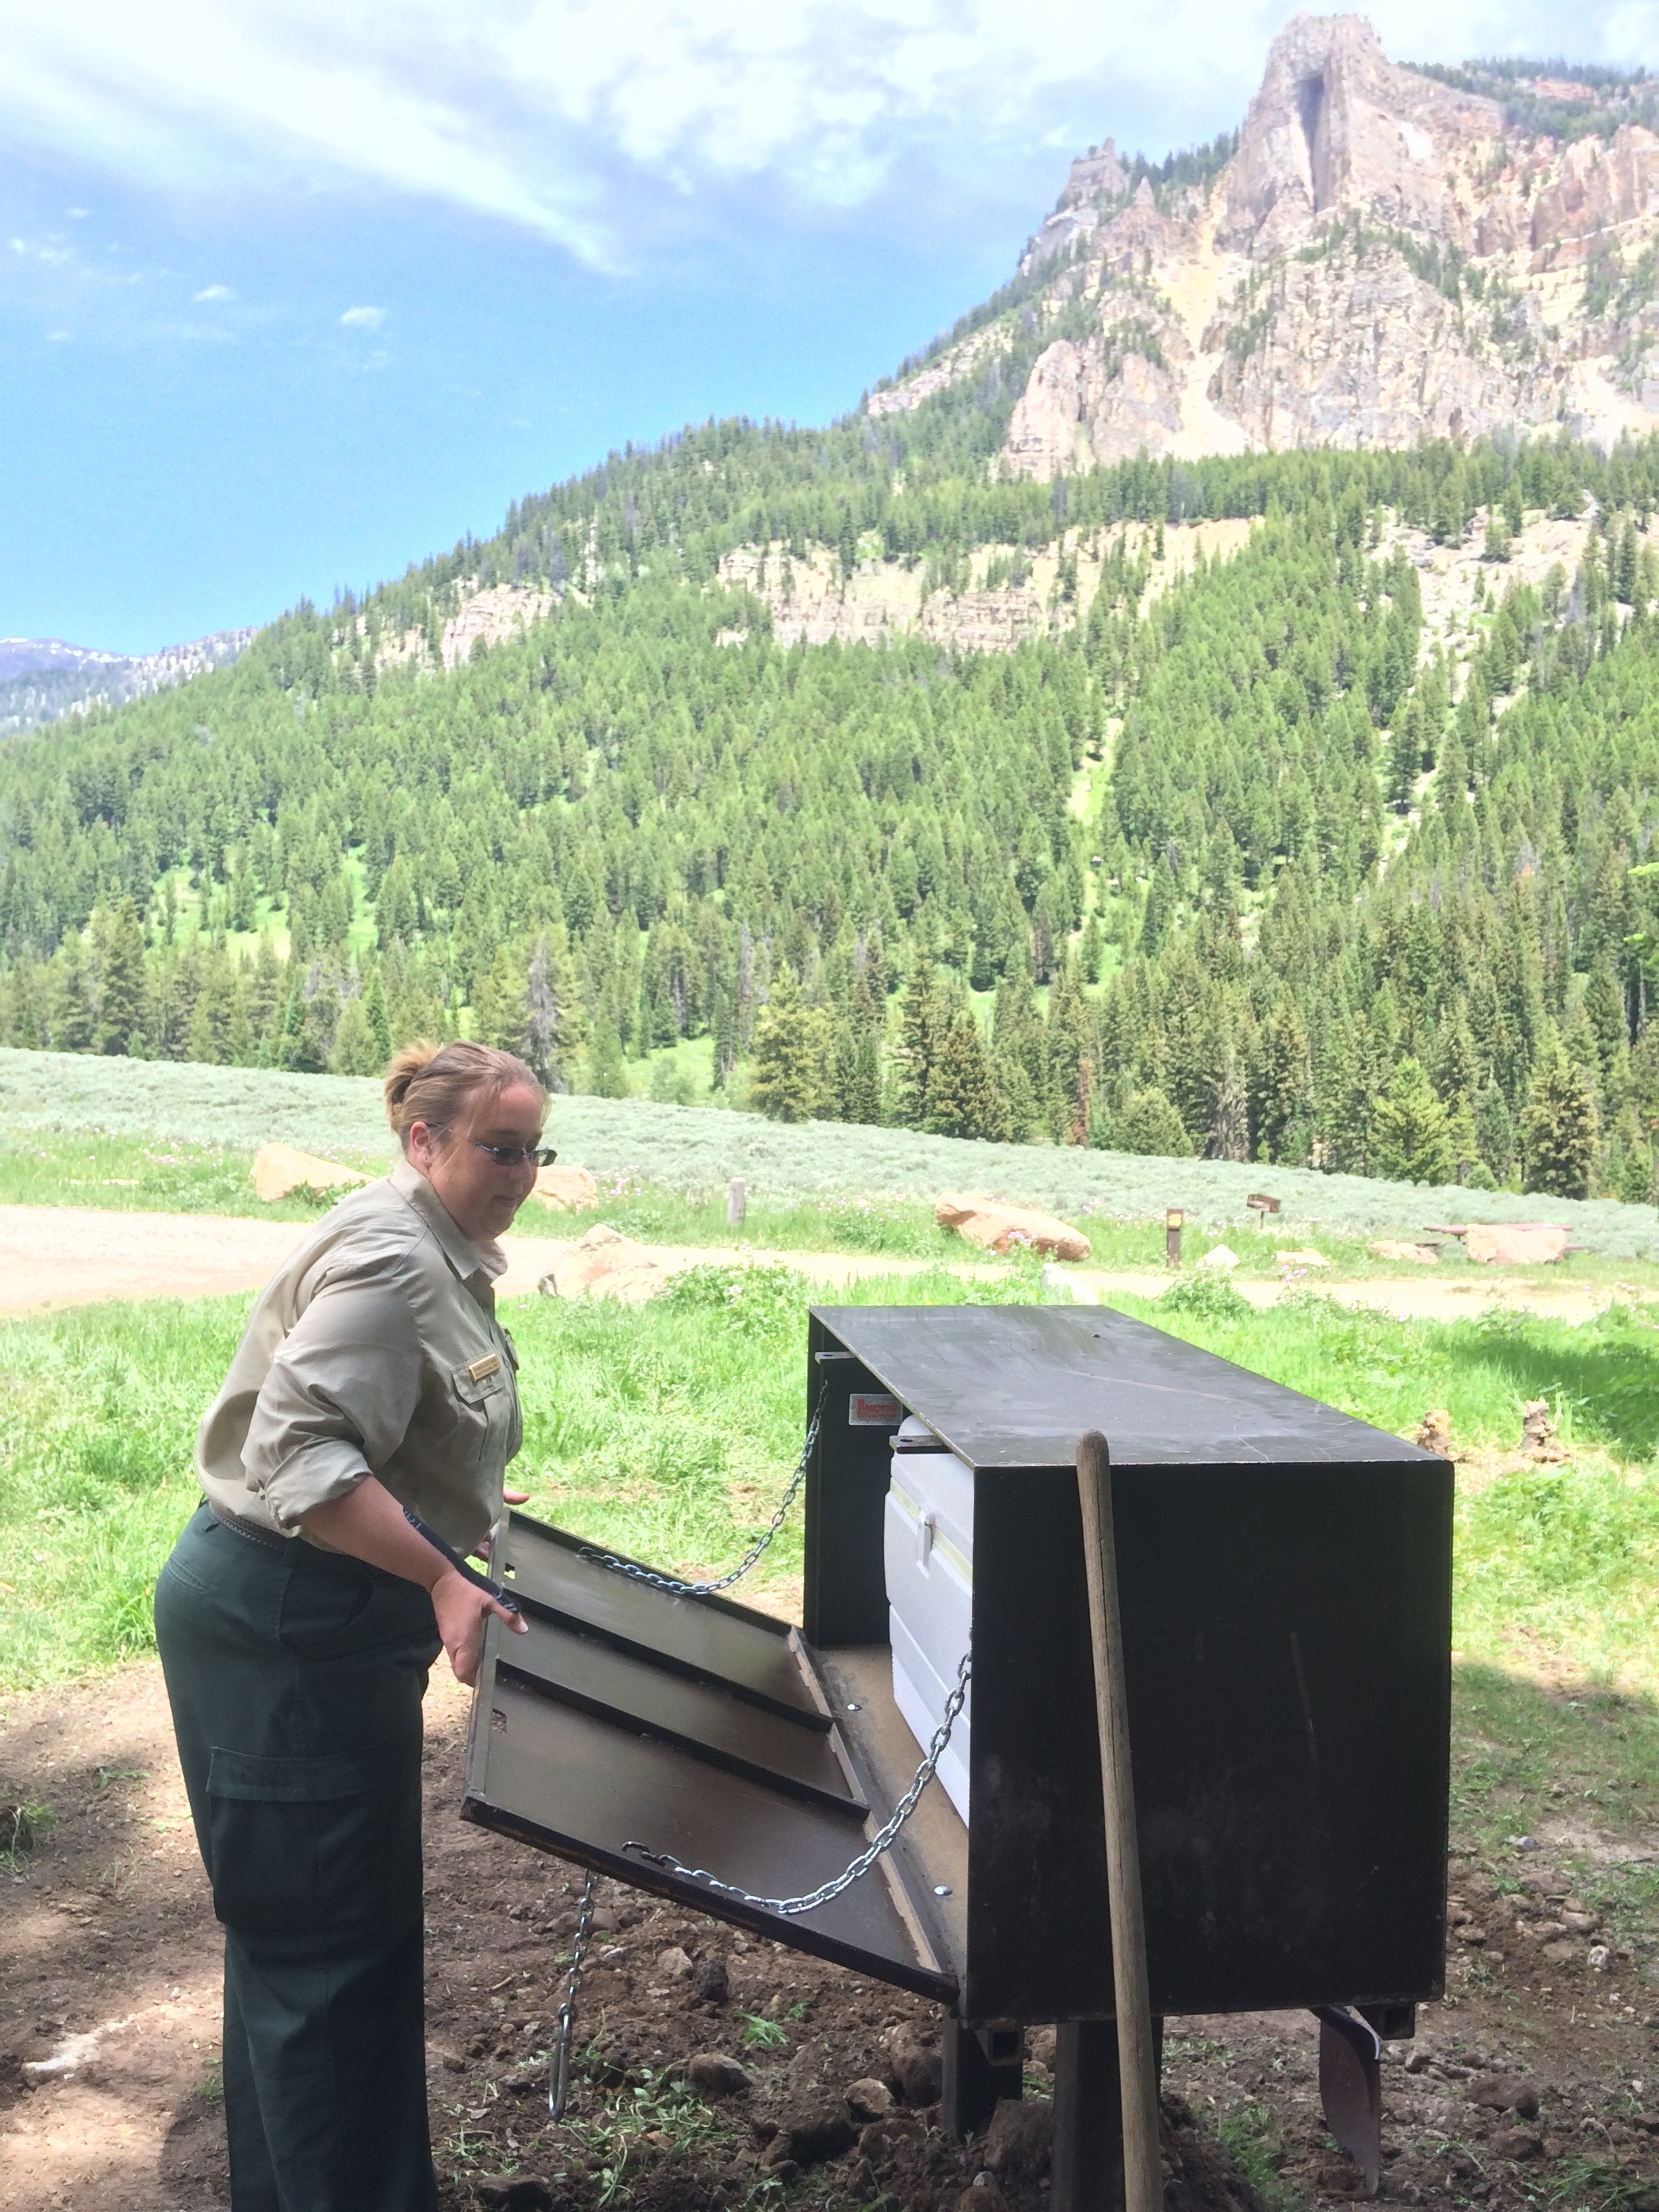 Forest Service staff with the new bear boxes at Granite Creek Campground. (Photo GYC.)